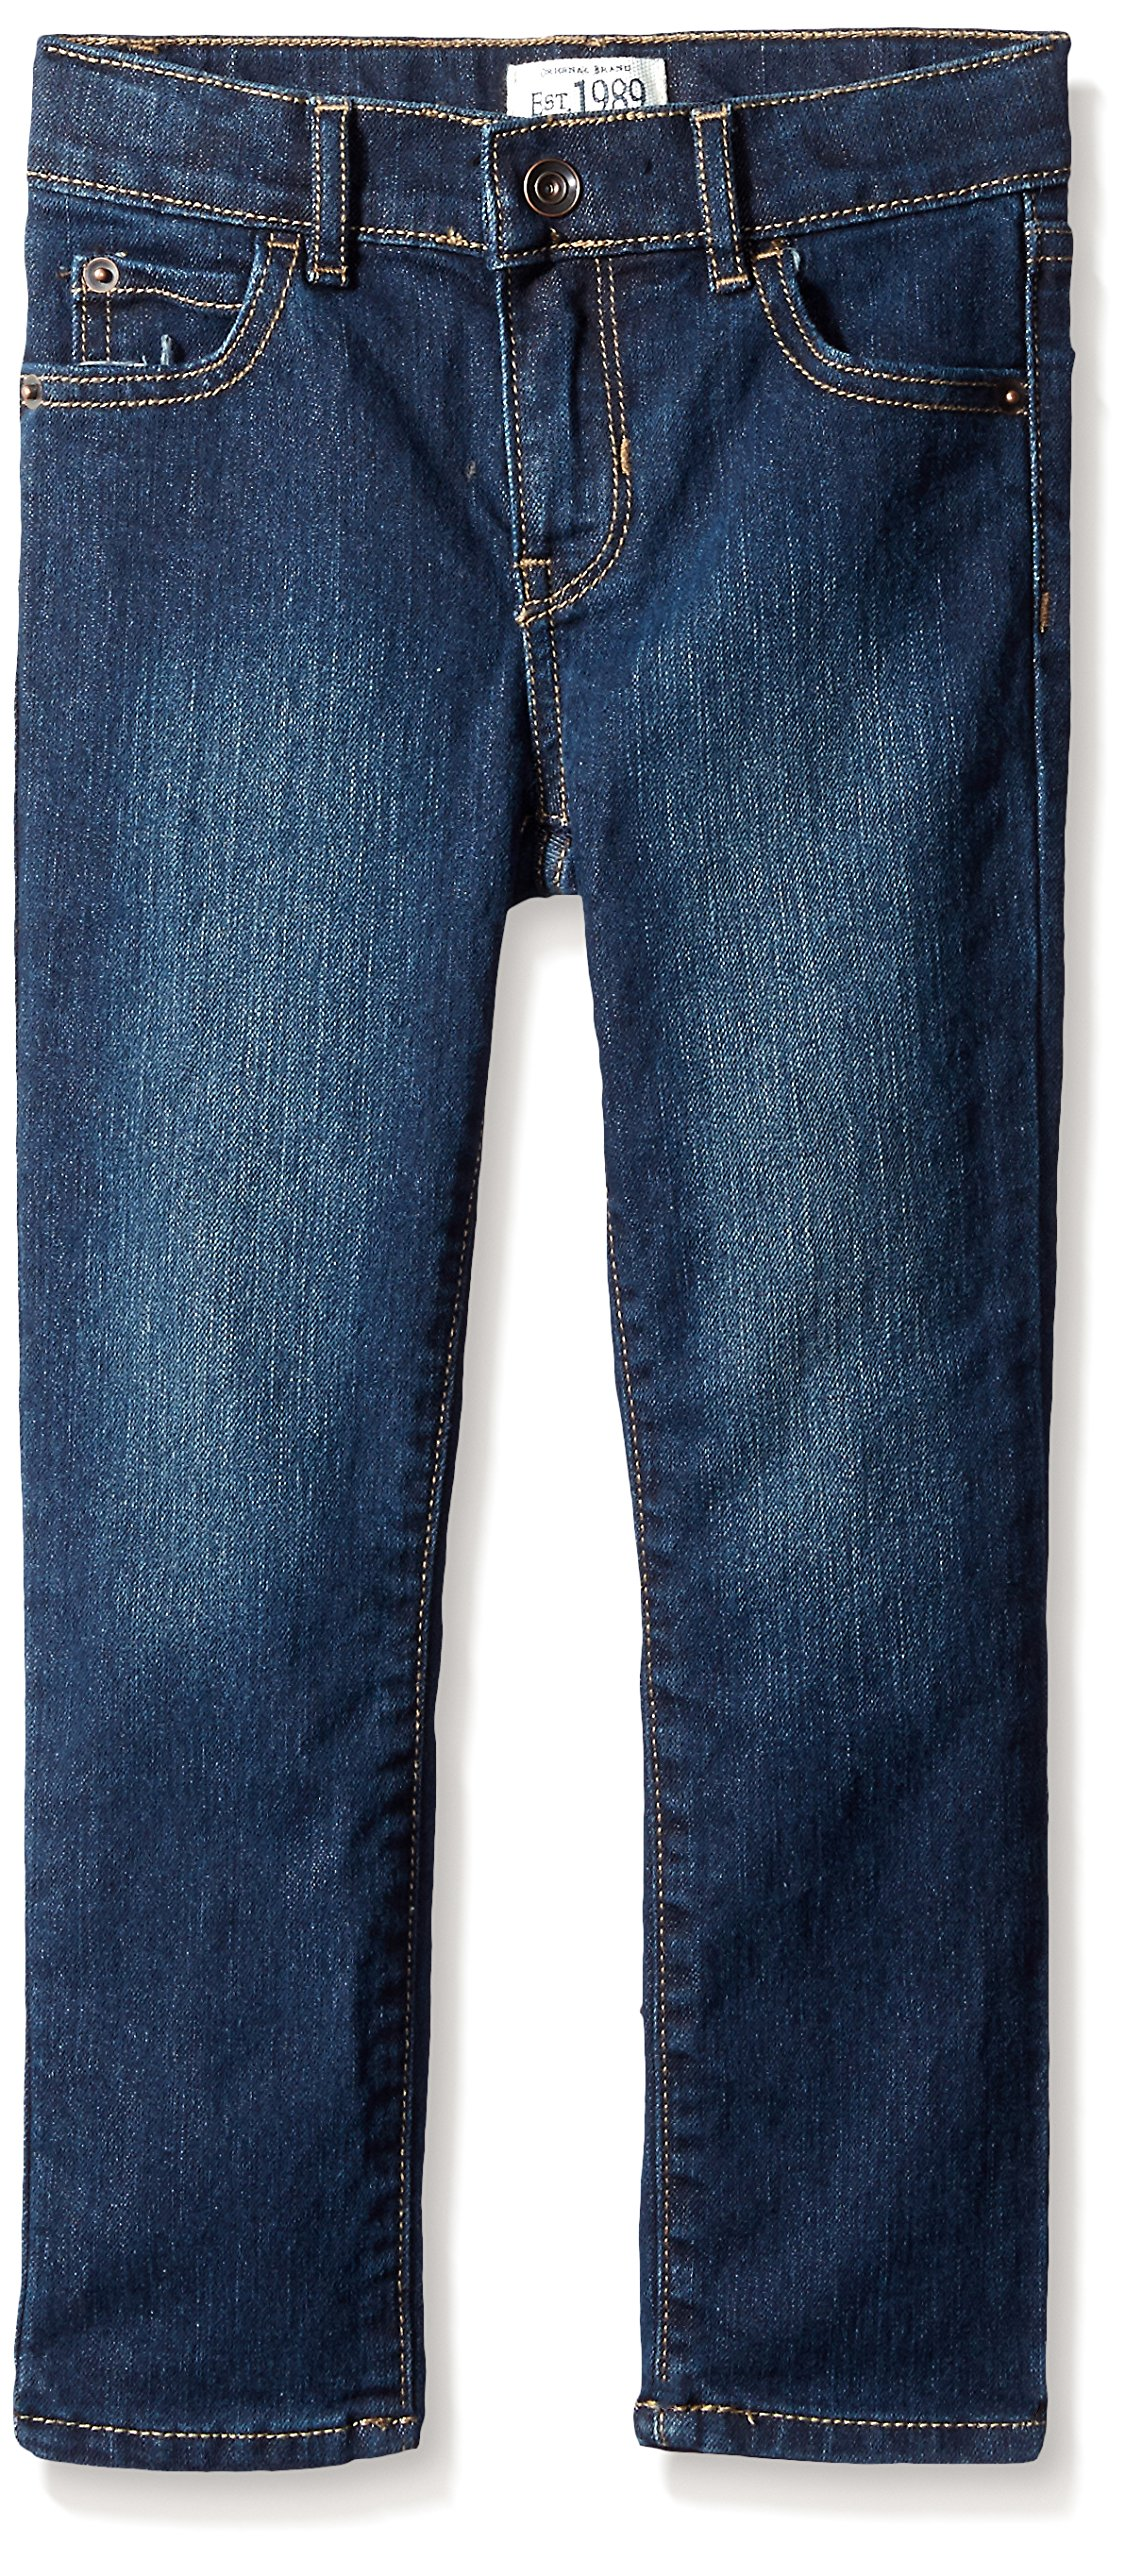 The Children's Place Big Boys Super Skinny Jeans, Dark Wear, 8 by The Children's Place (Image #1)